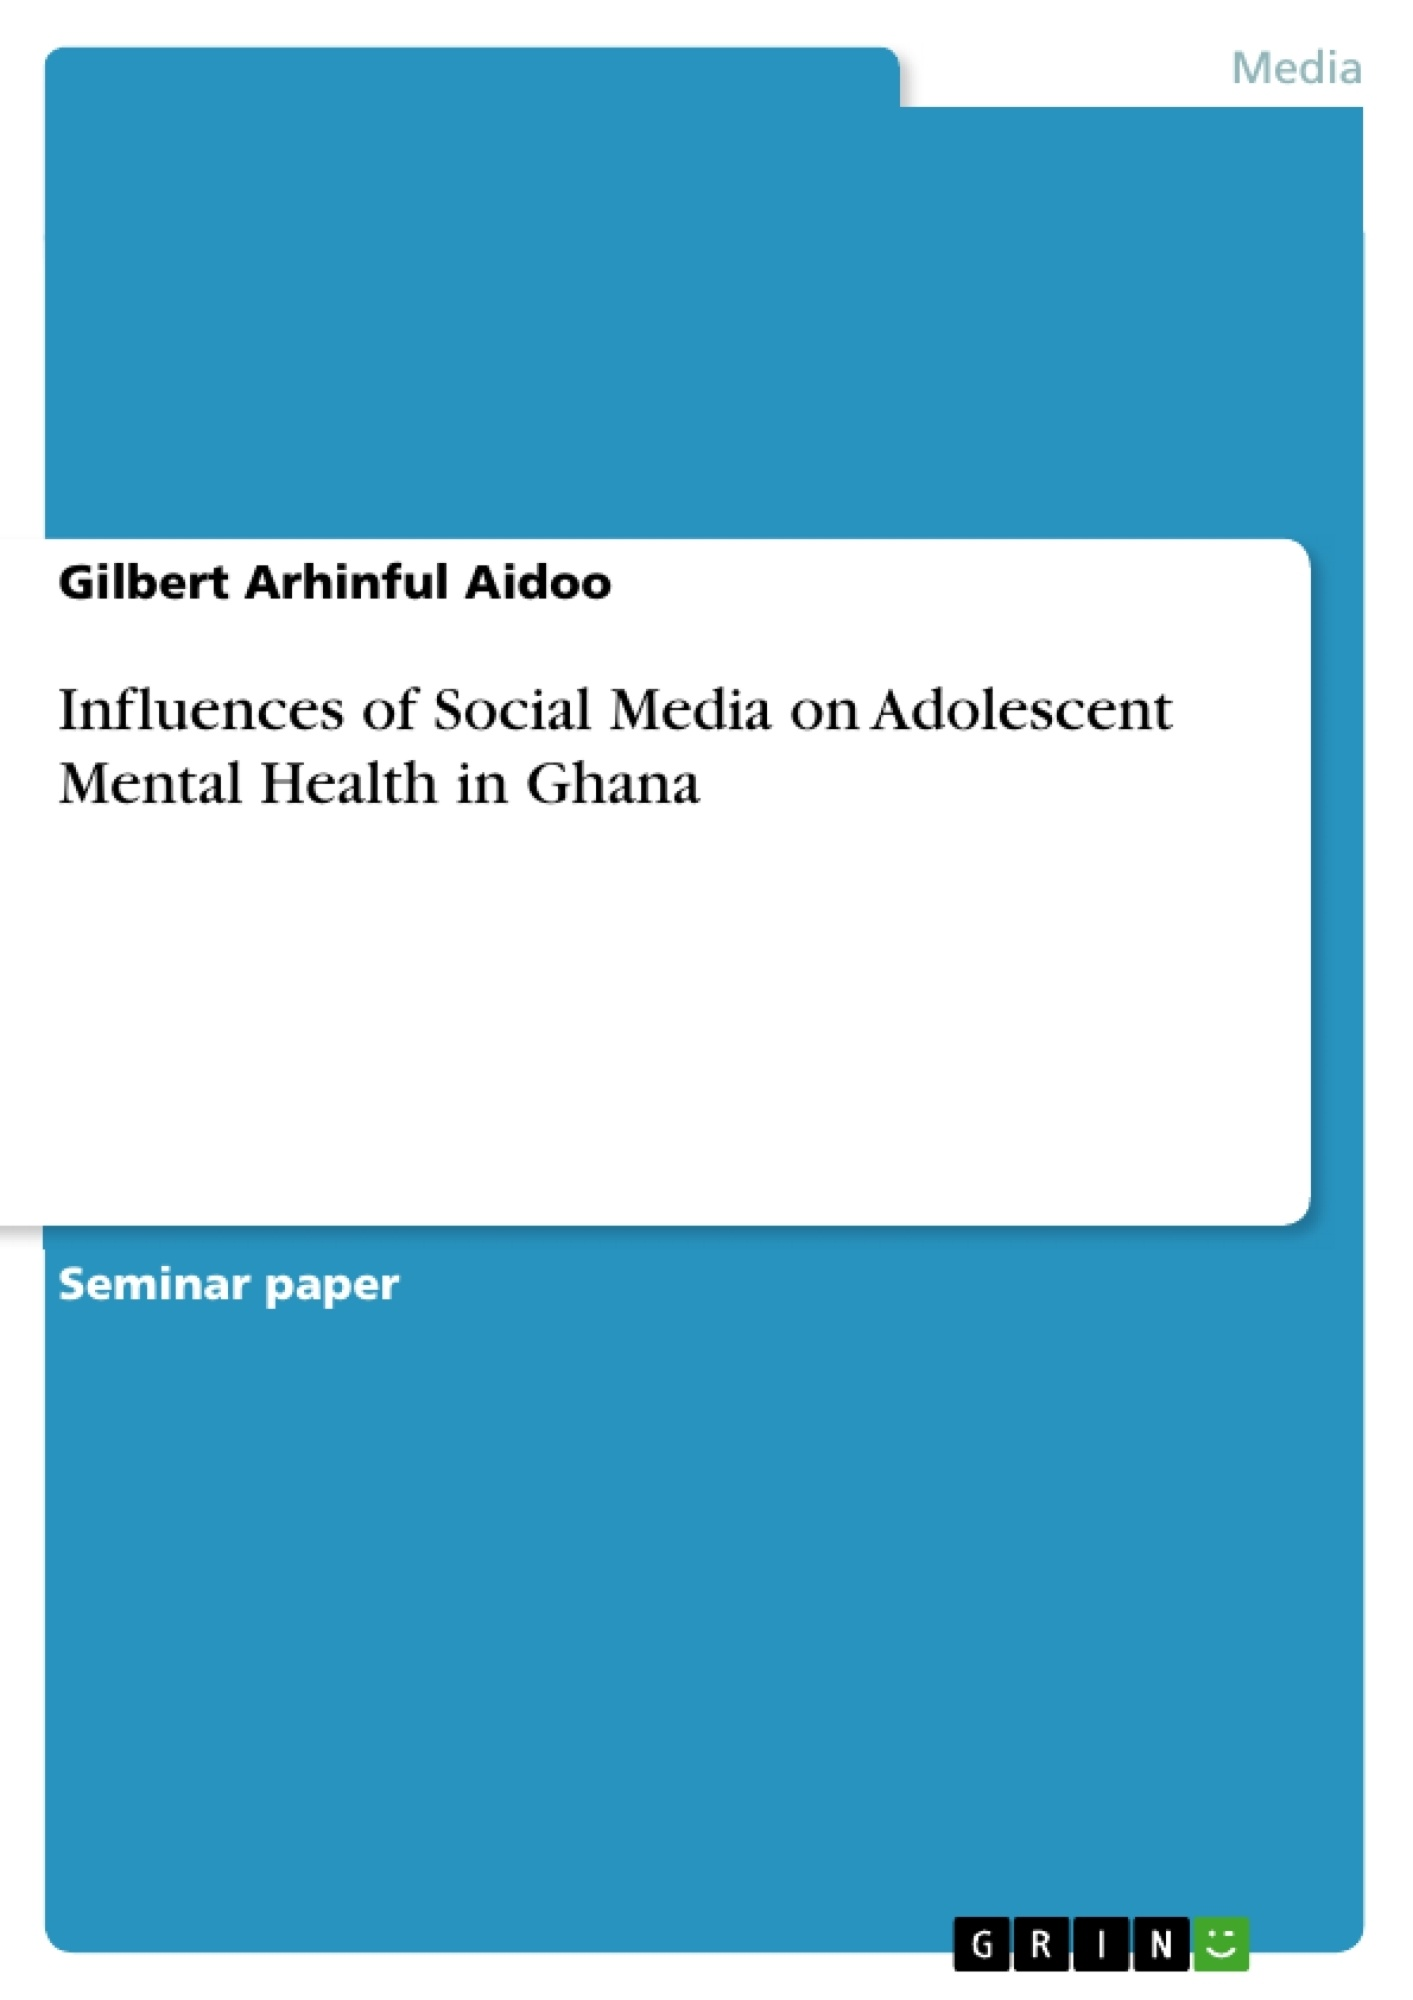 Title: Influences of Social Media on Adolescent Mental Health in Ghana